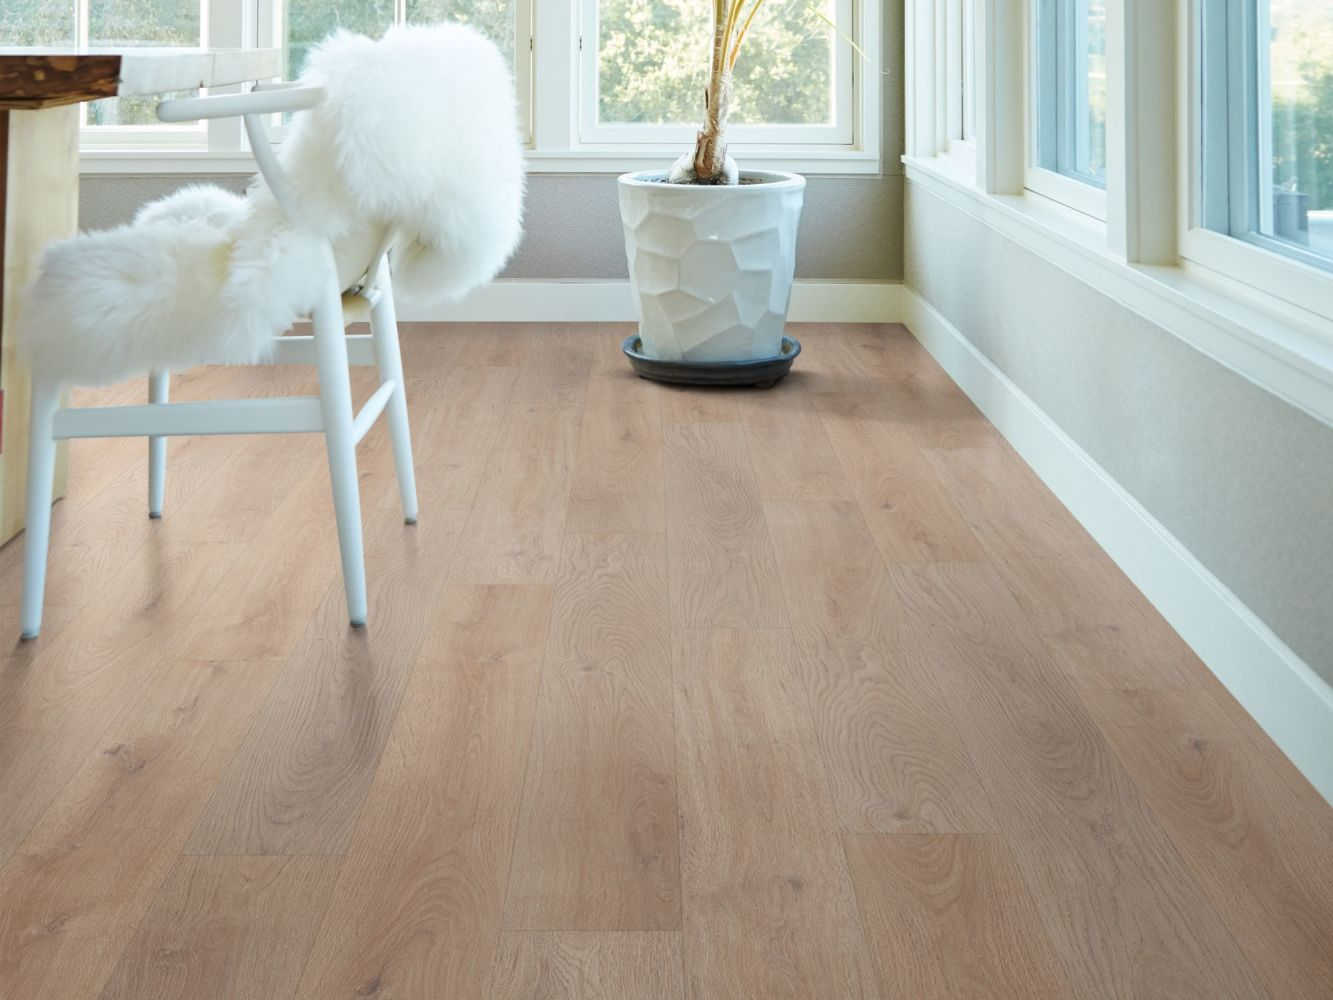 Shaw Floors Resilient Residential Distinction Plus Villa Oak 01090_2045V